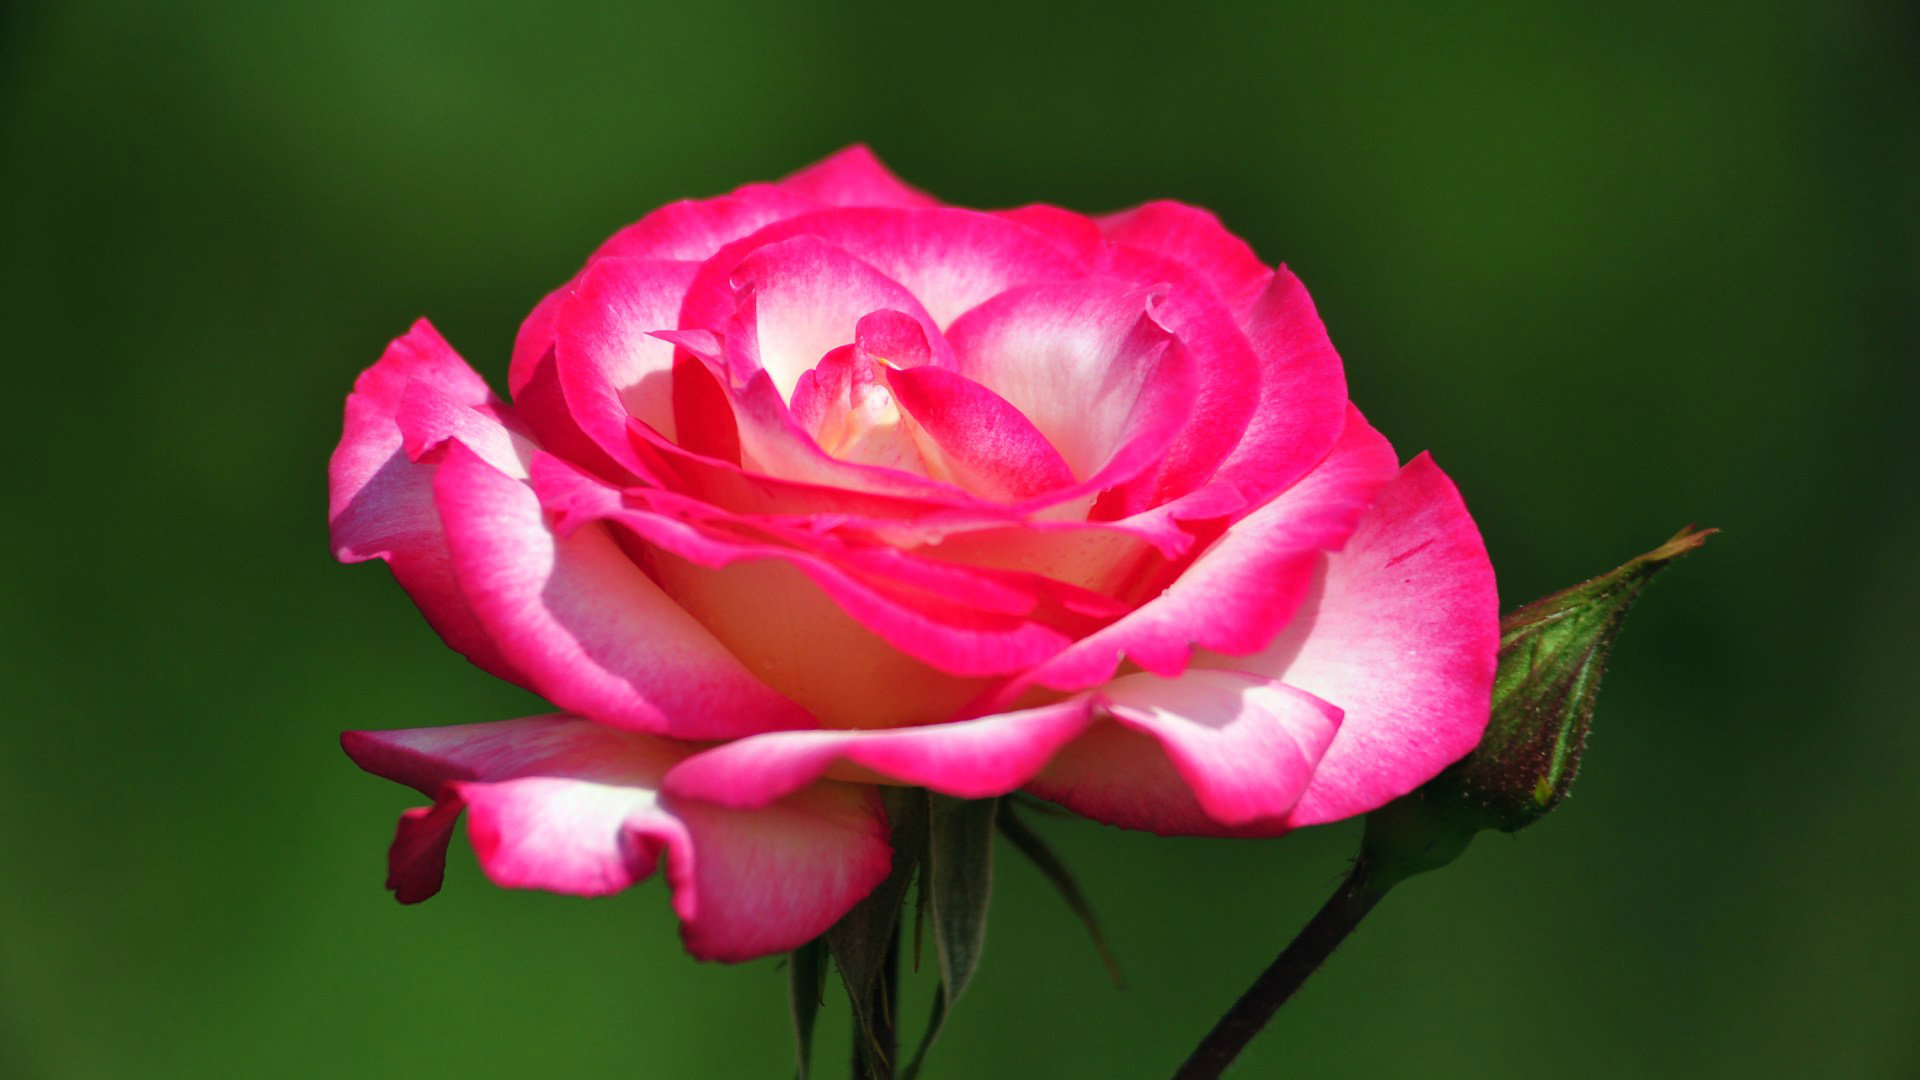 Beautiful Rose Hd Wallpapers Wallpapersafari